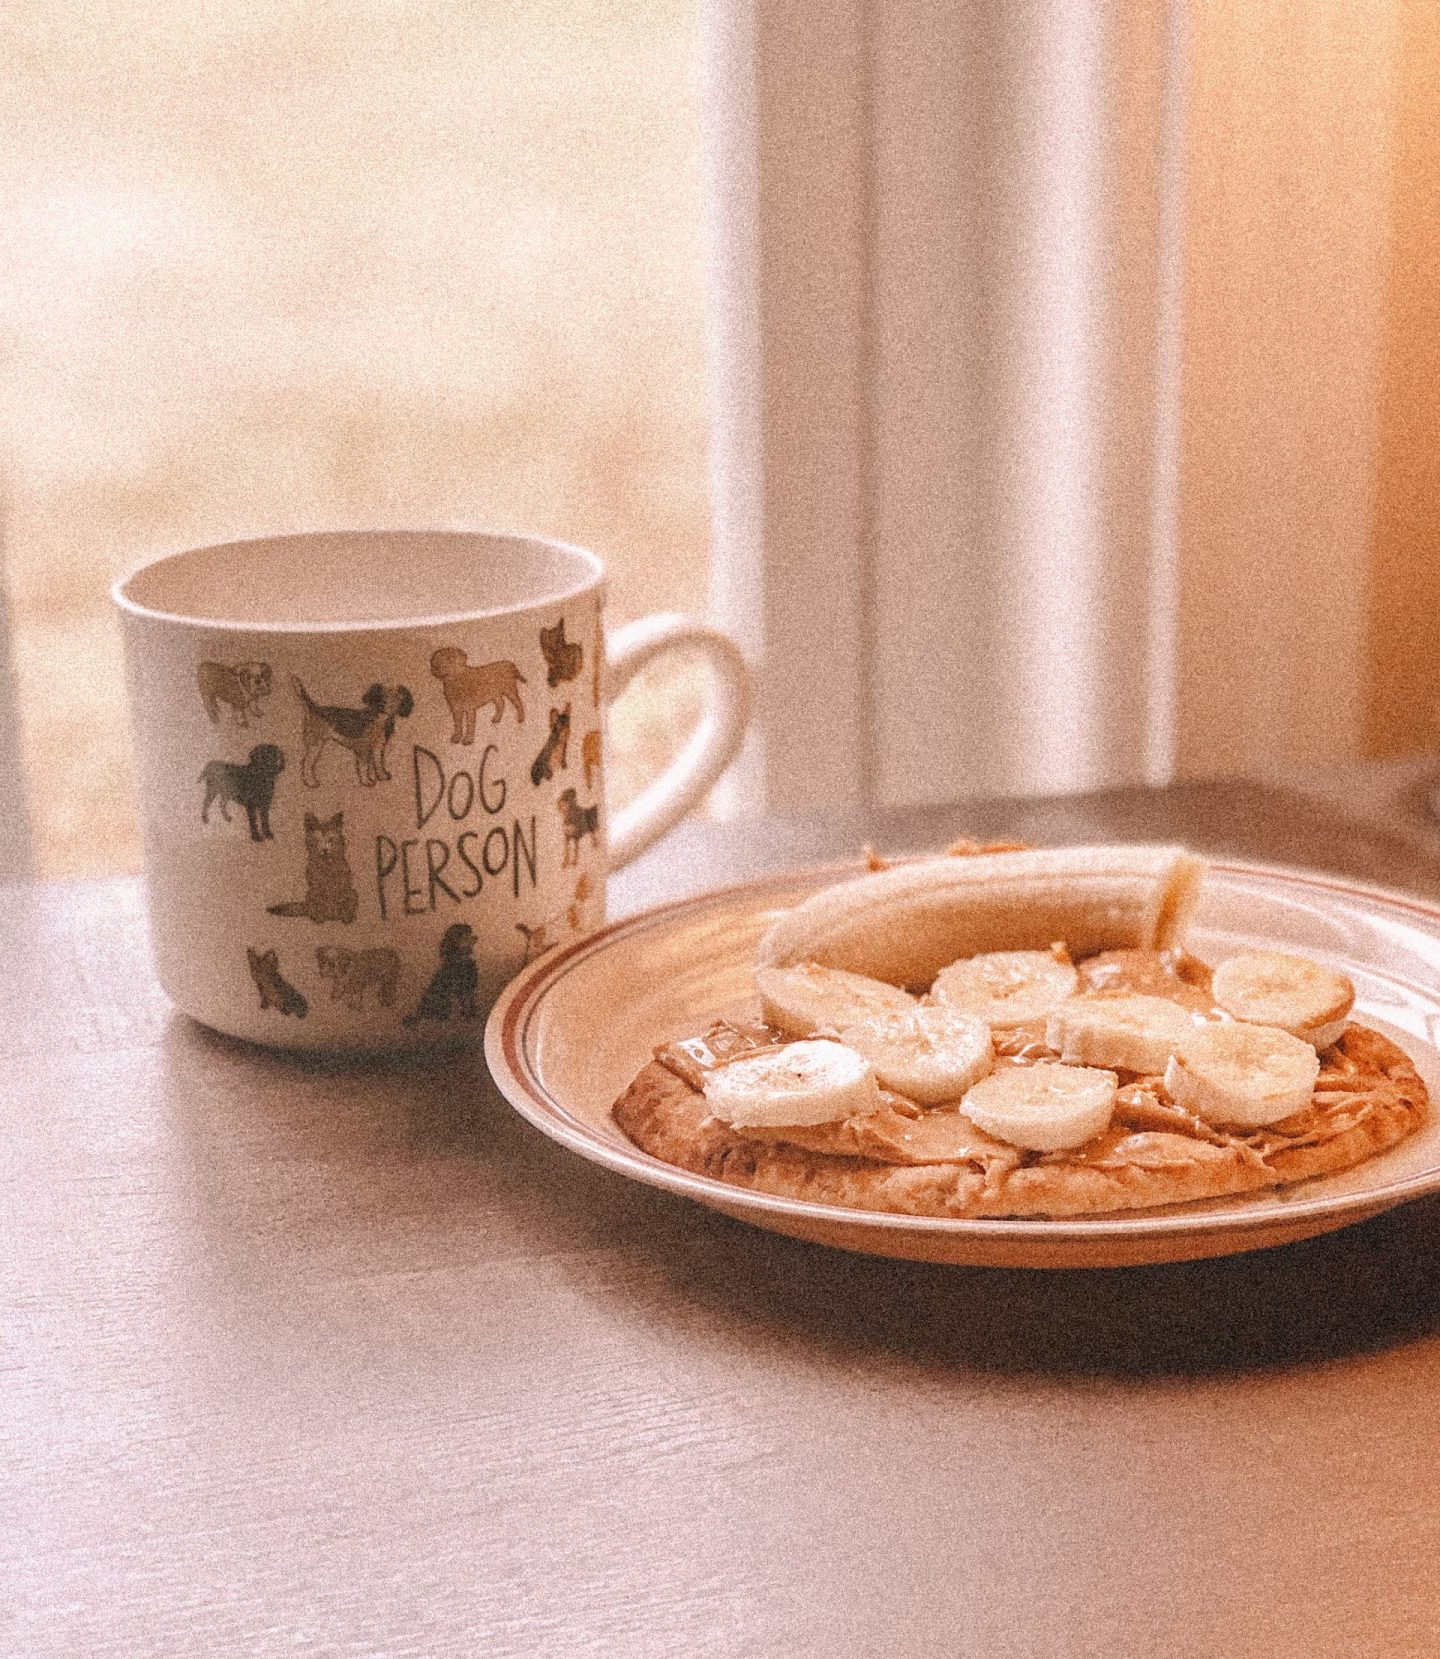 cup of coffee and naan bread on plate